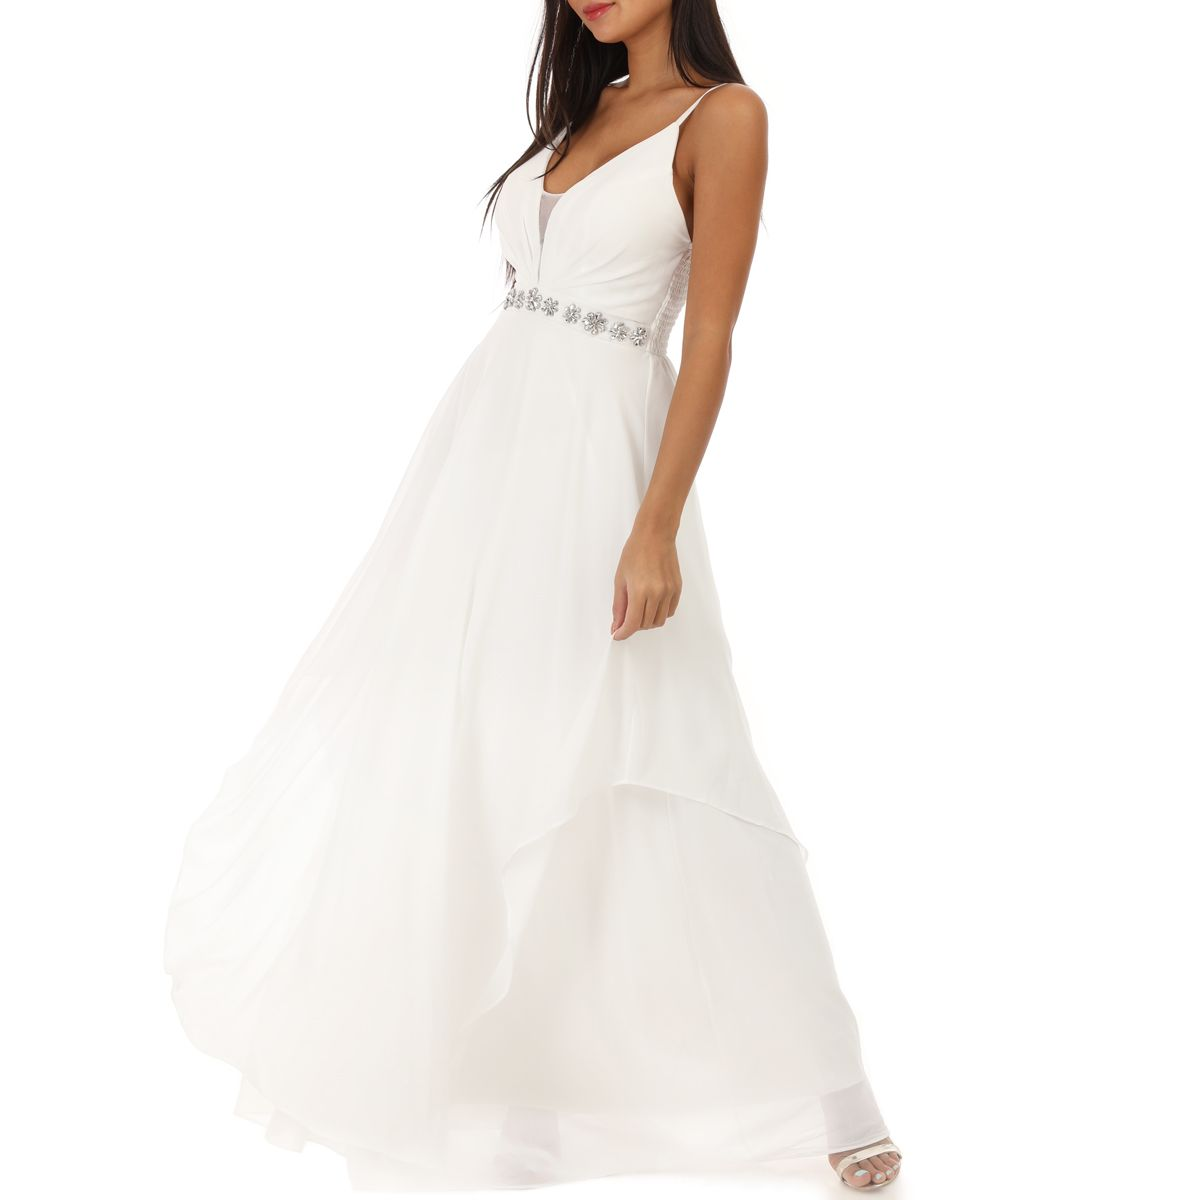 Robe Longue Fluide Blanche A Strass